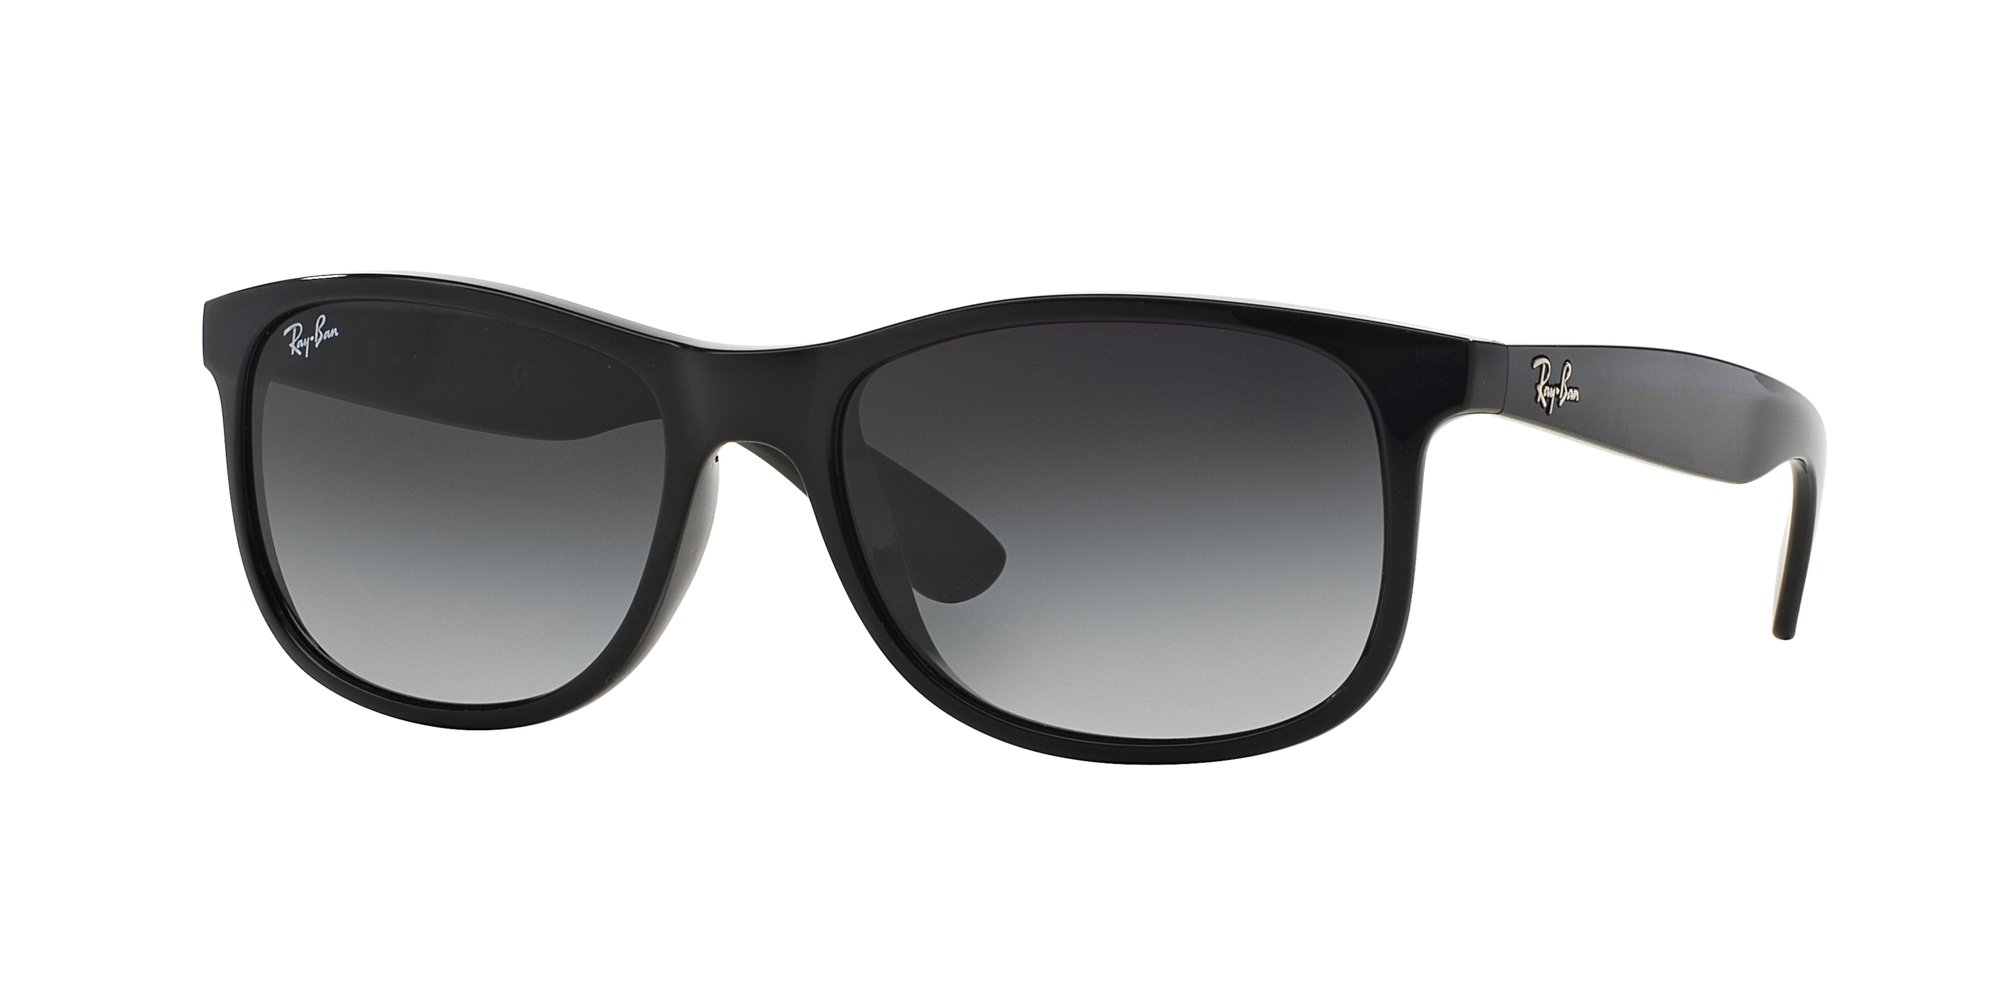 Ray Ban RB4202 601/8G Andy Sonnenbrille verglast 2Ktx5s